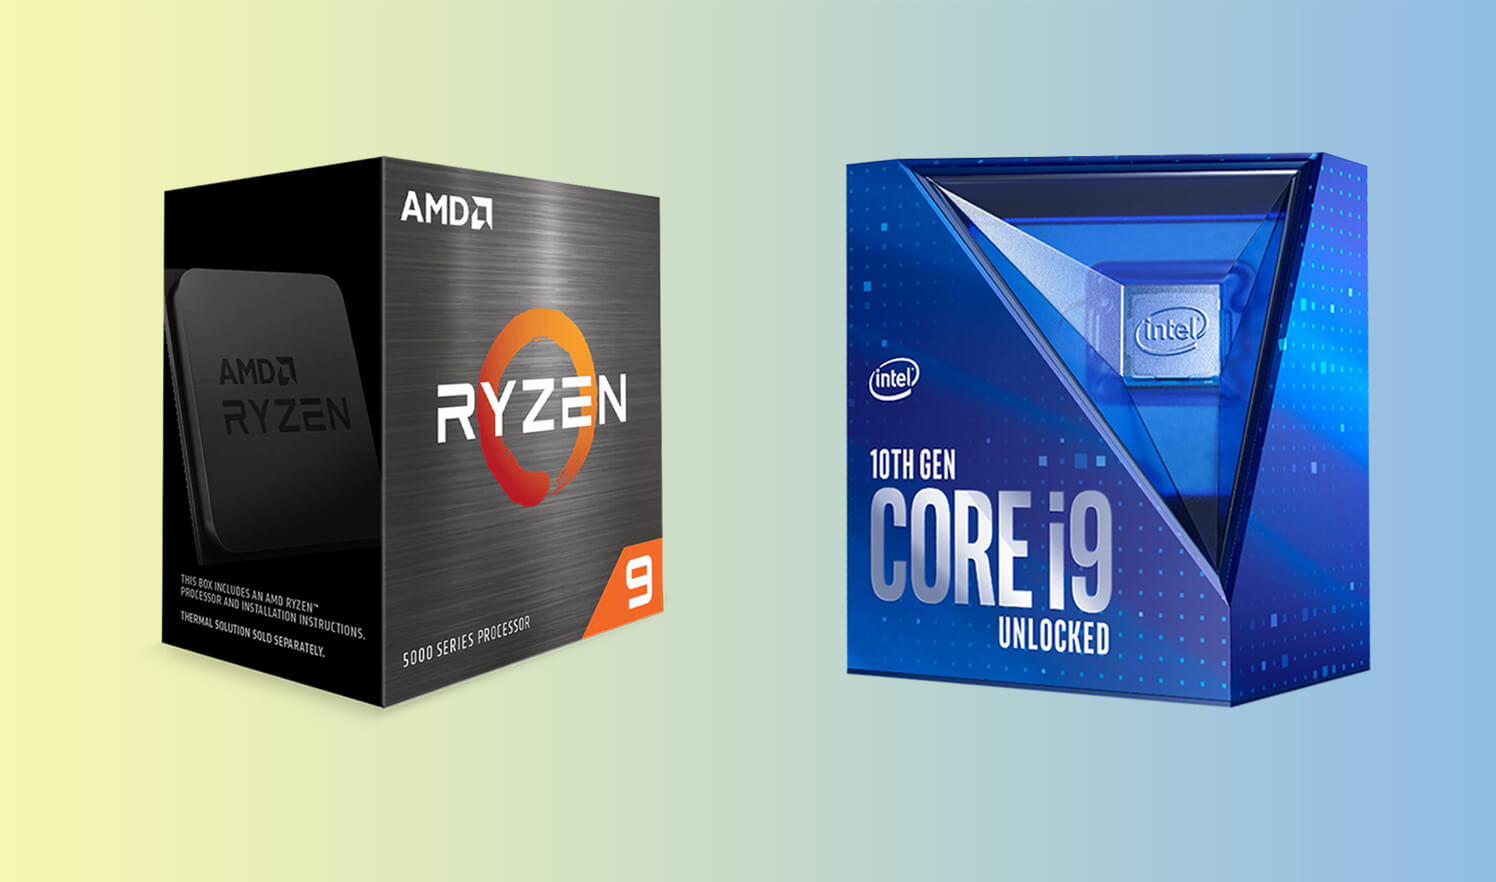 Best CPUs - Top Gaming CPUs for the Money